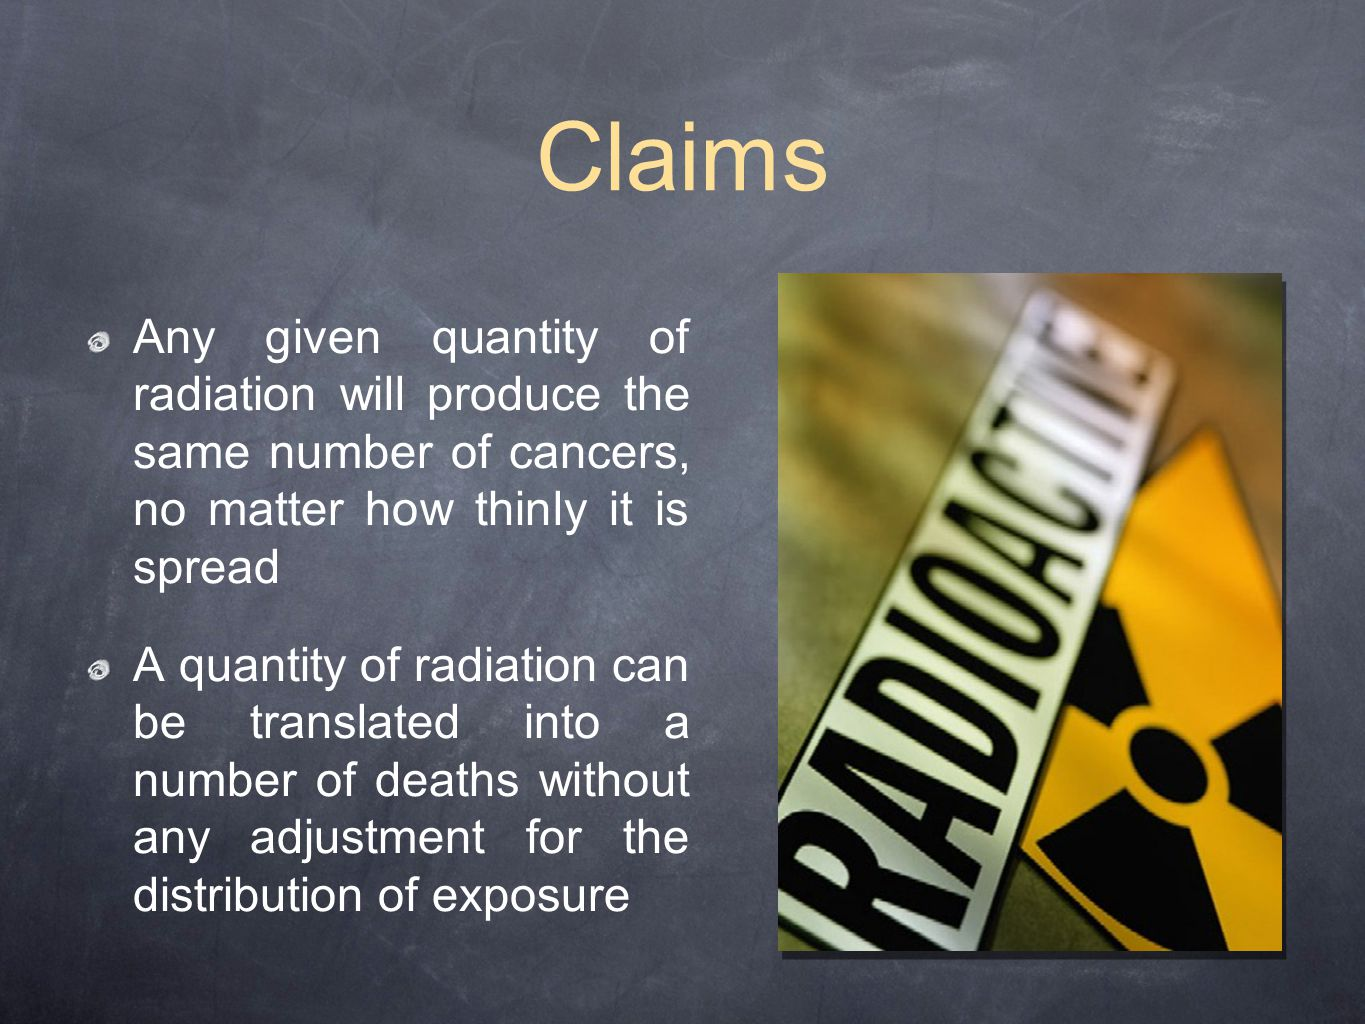 Claims Any given quantity of radiation will produce the same number of cancers, no matter how thinly it is spread.